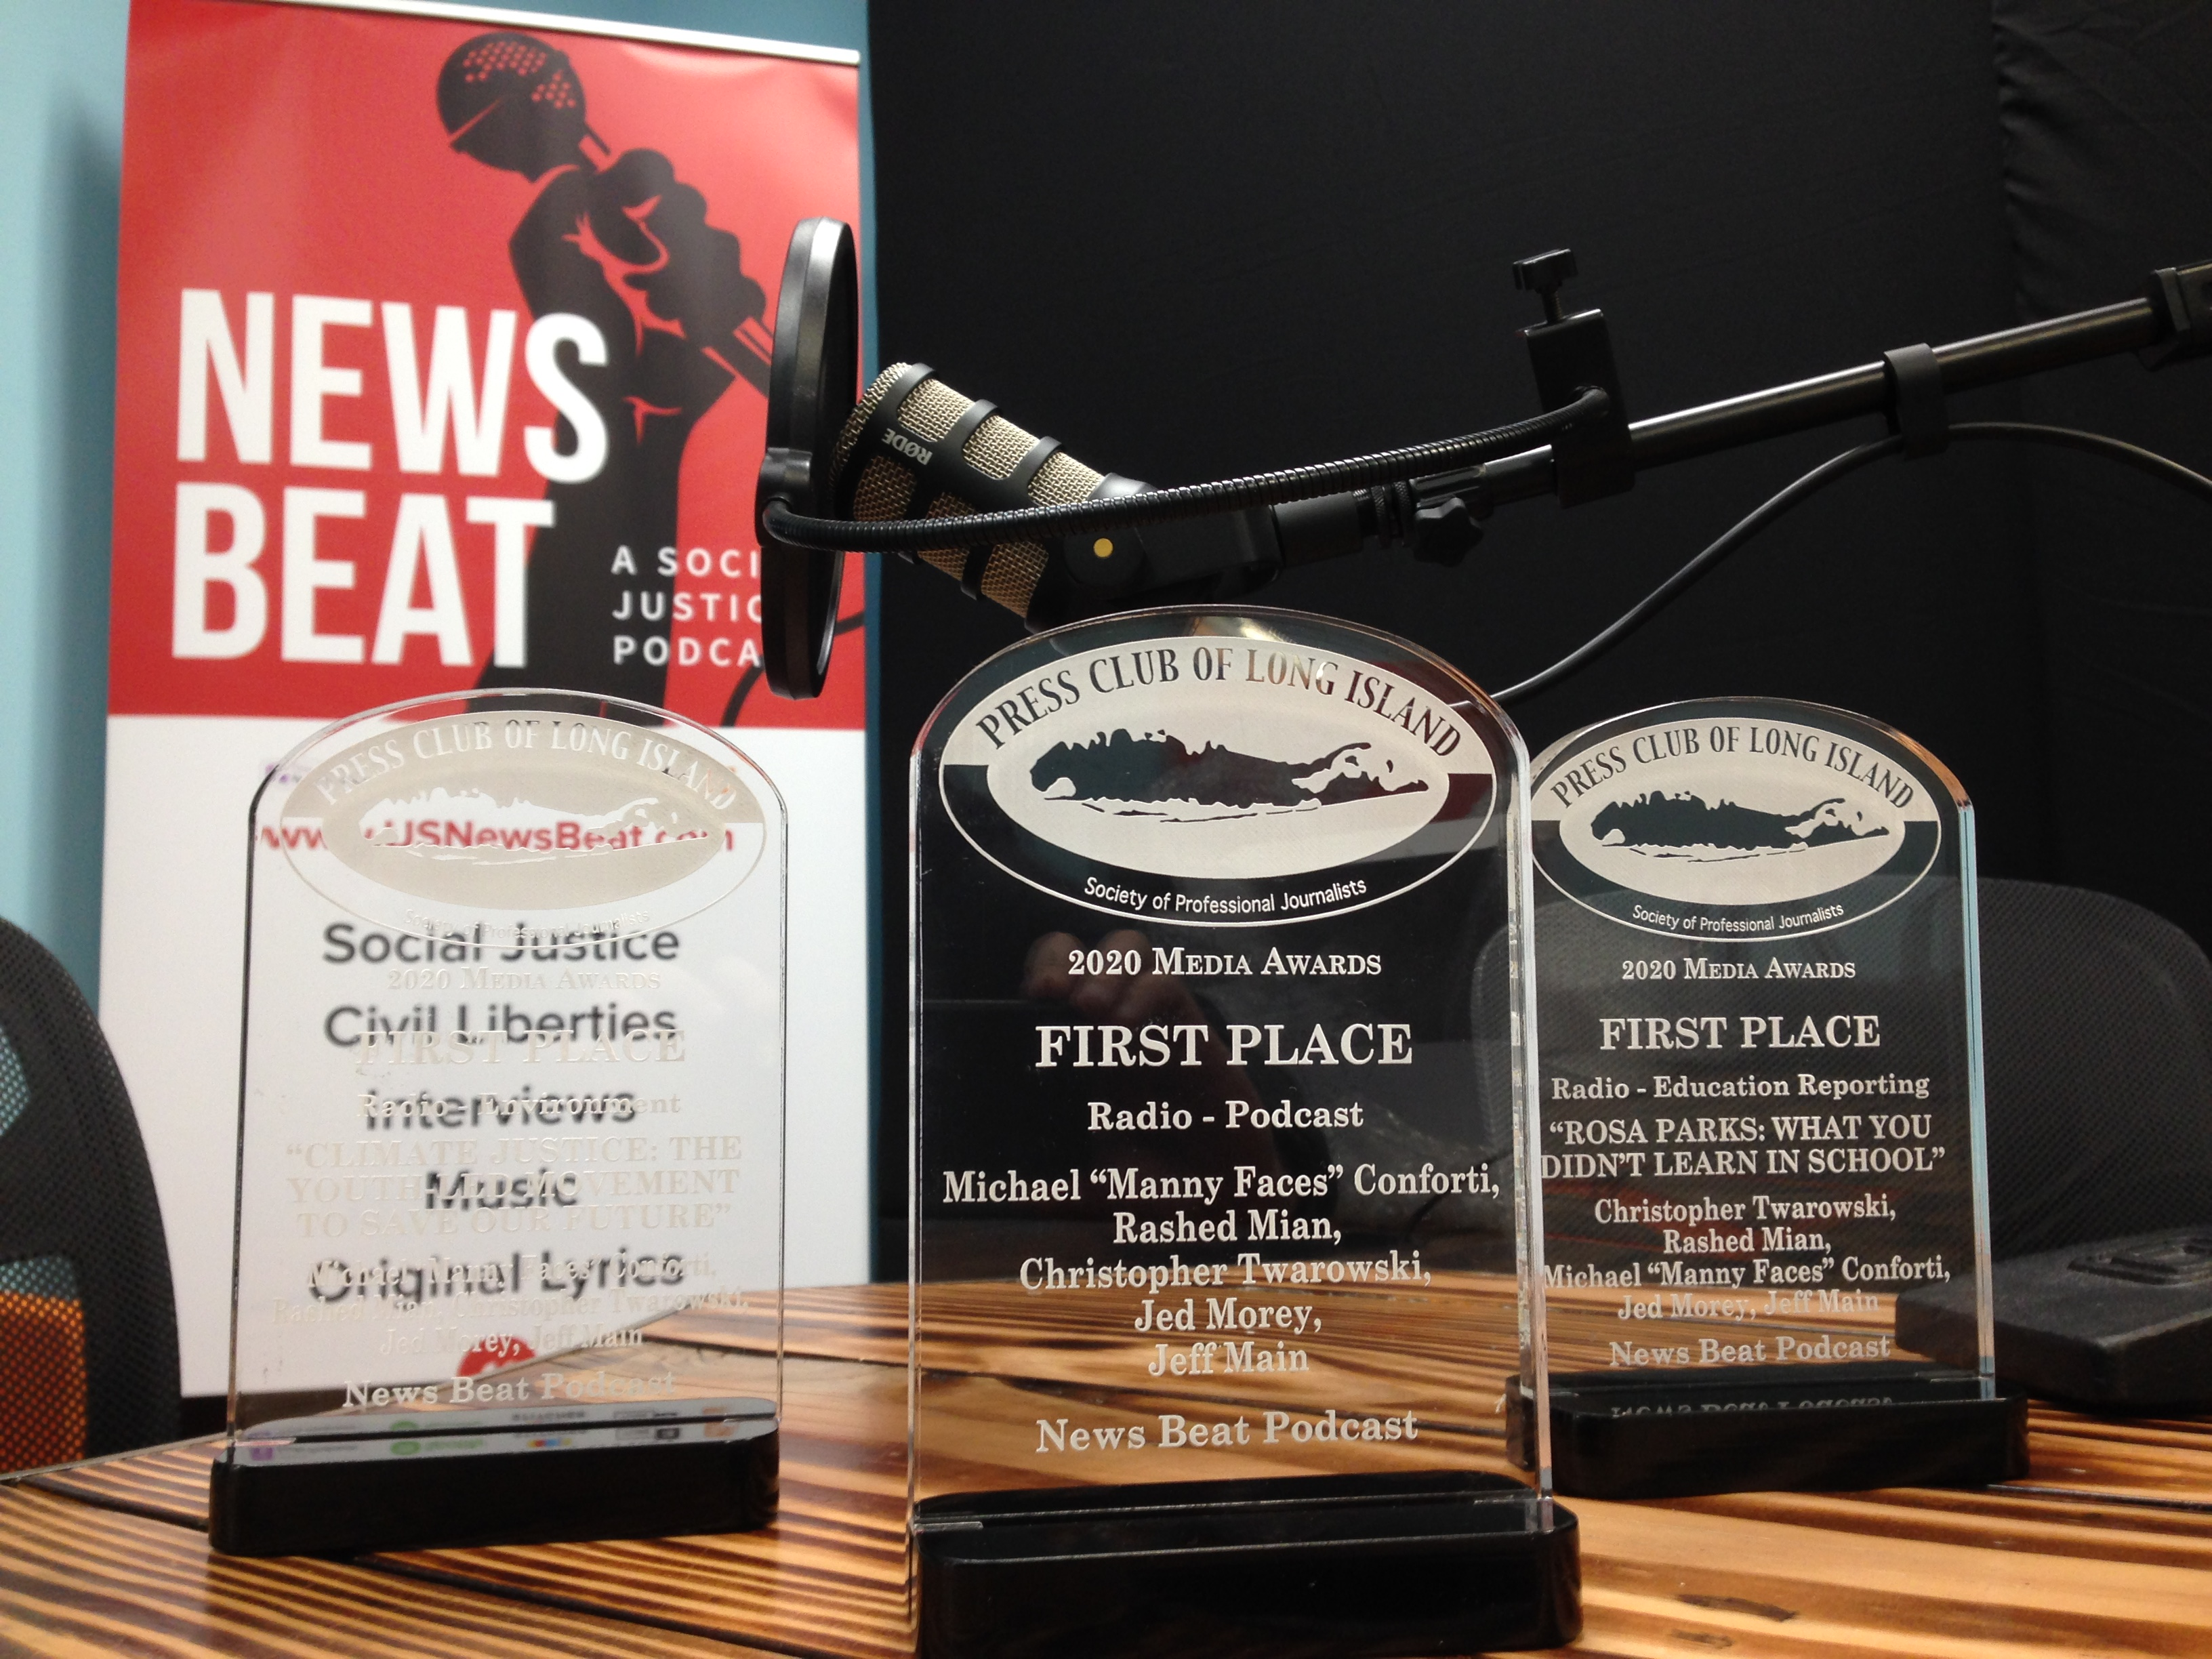 Image of three First Place awards for News Beat podcast in front of a microphone and logo banner